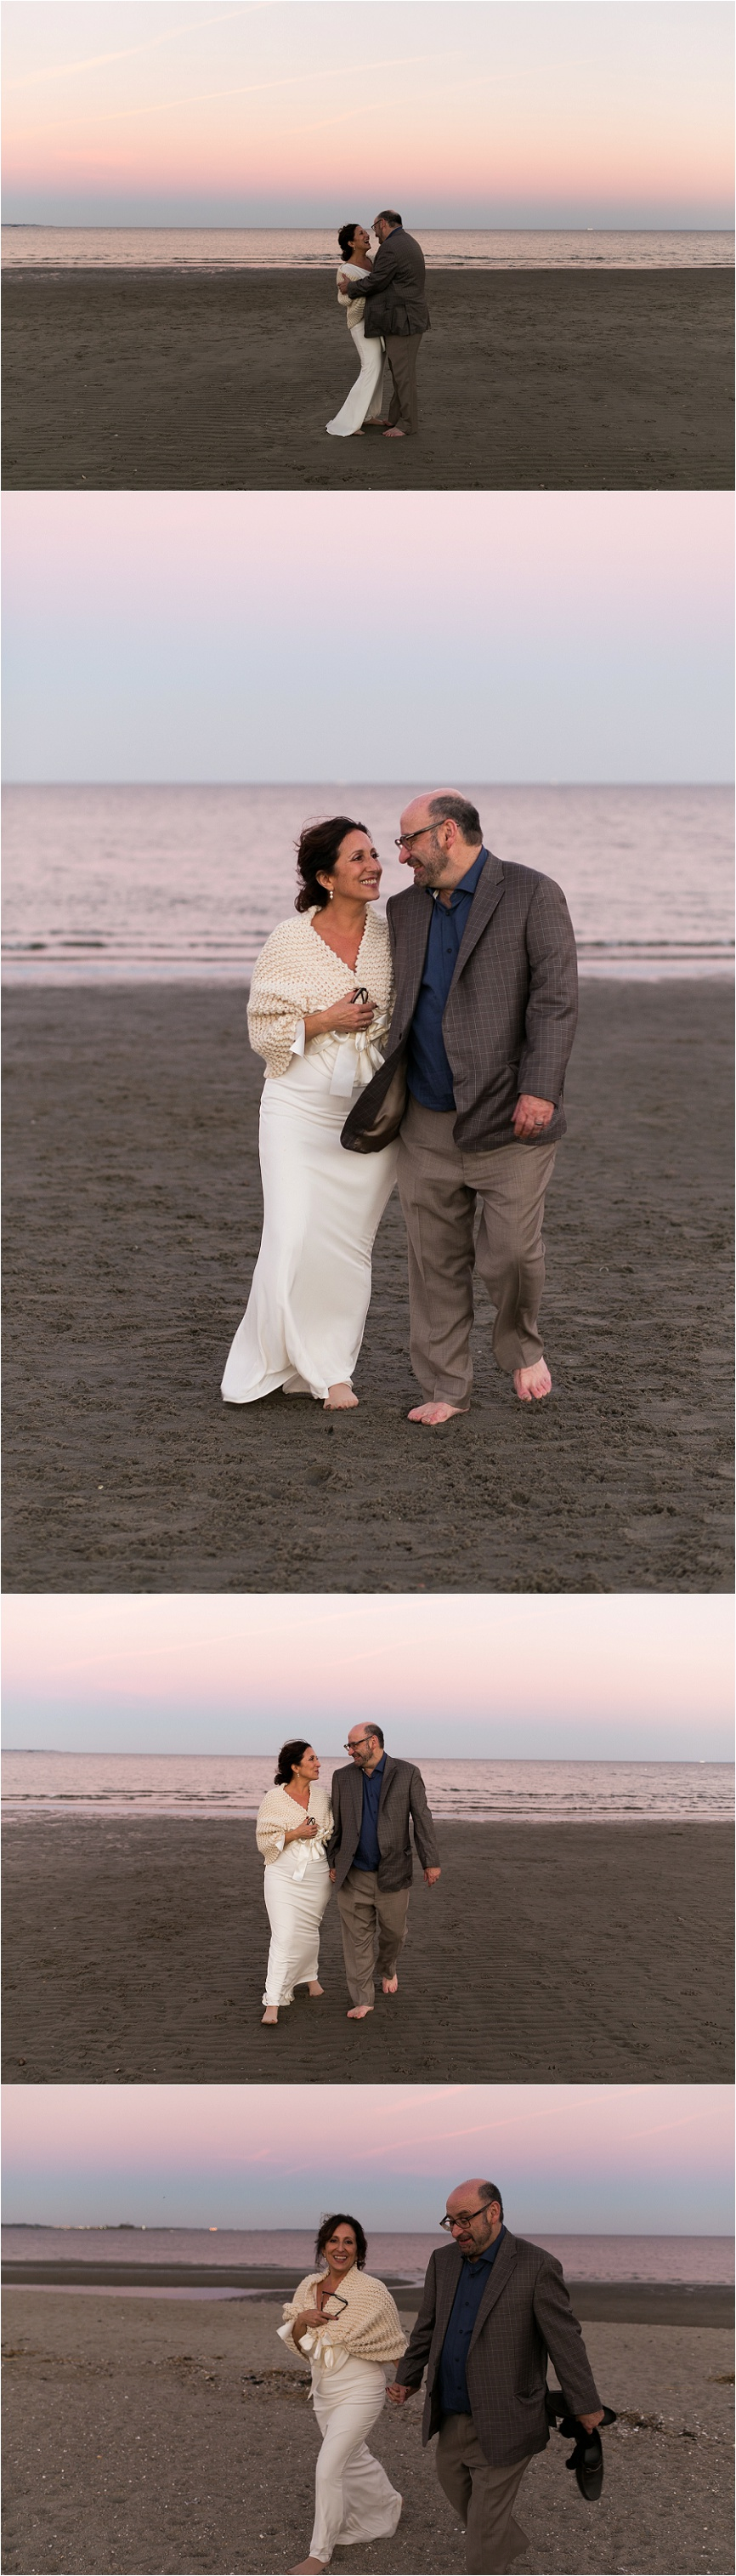 bride and groom photos on the beach in ct at sunset